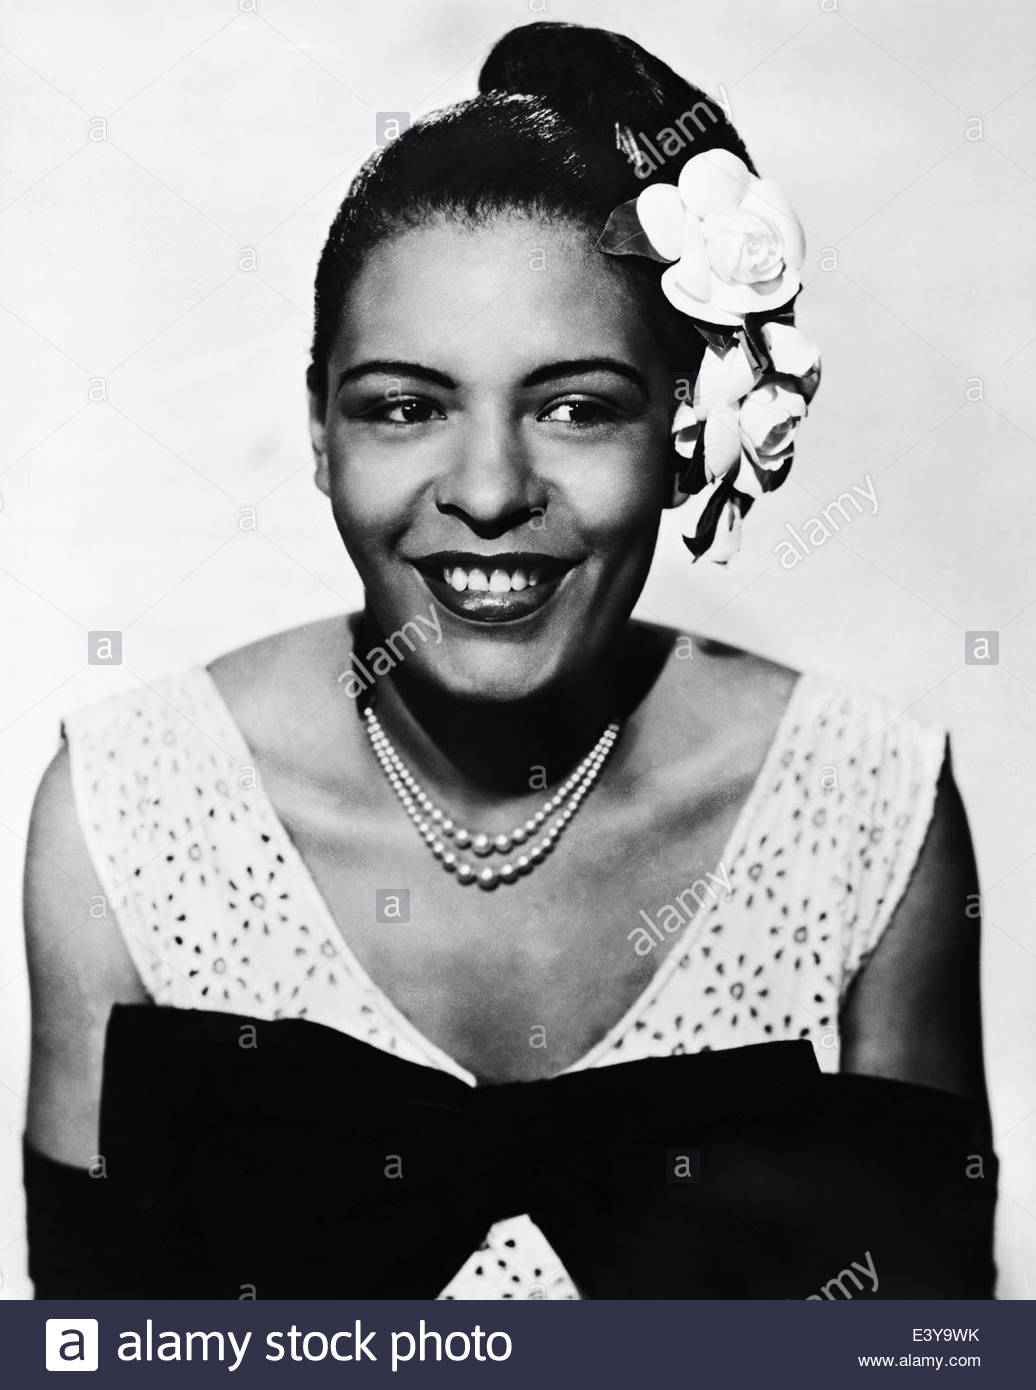 billie holiday stock photos billie holiday stock images alamy. Black Bedroom Furniture Sets. Home Design Ideas